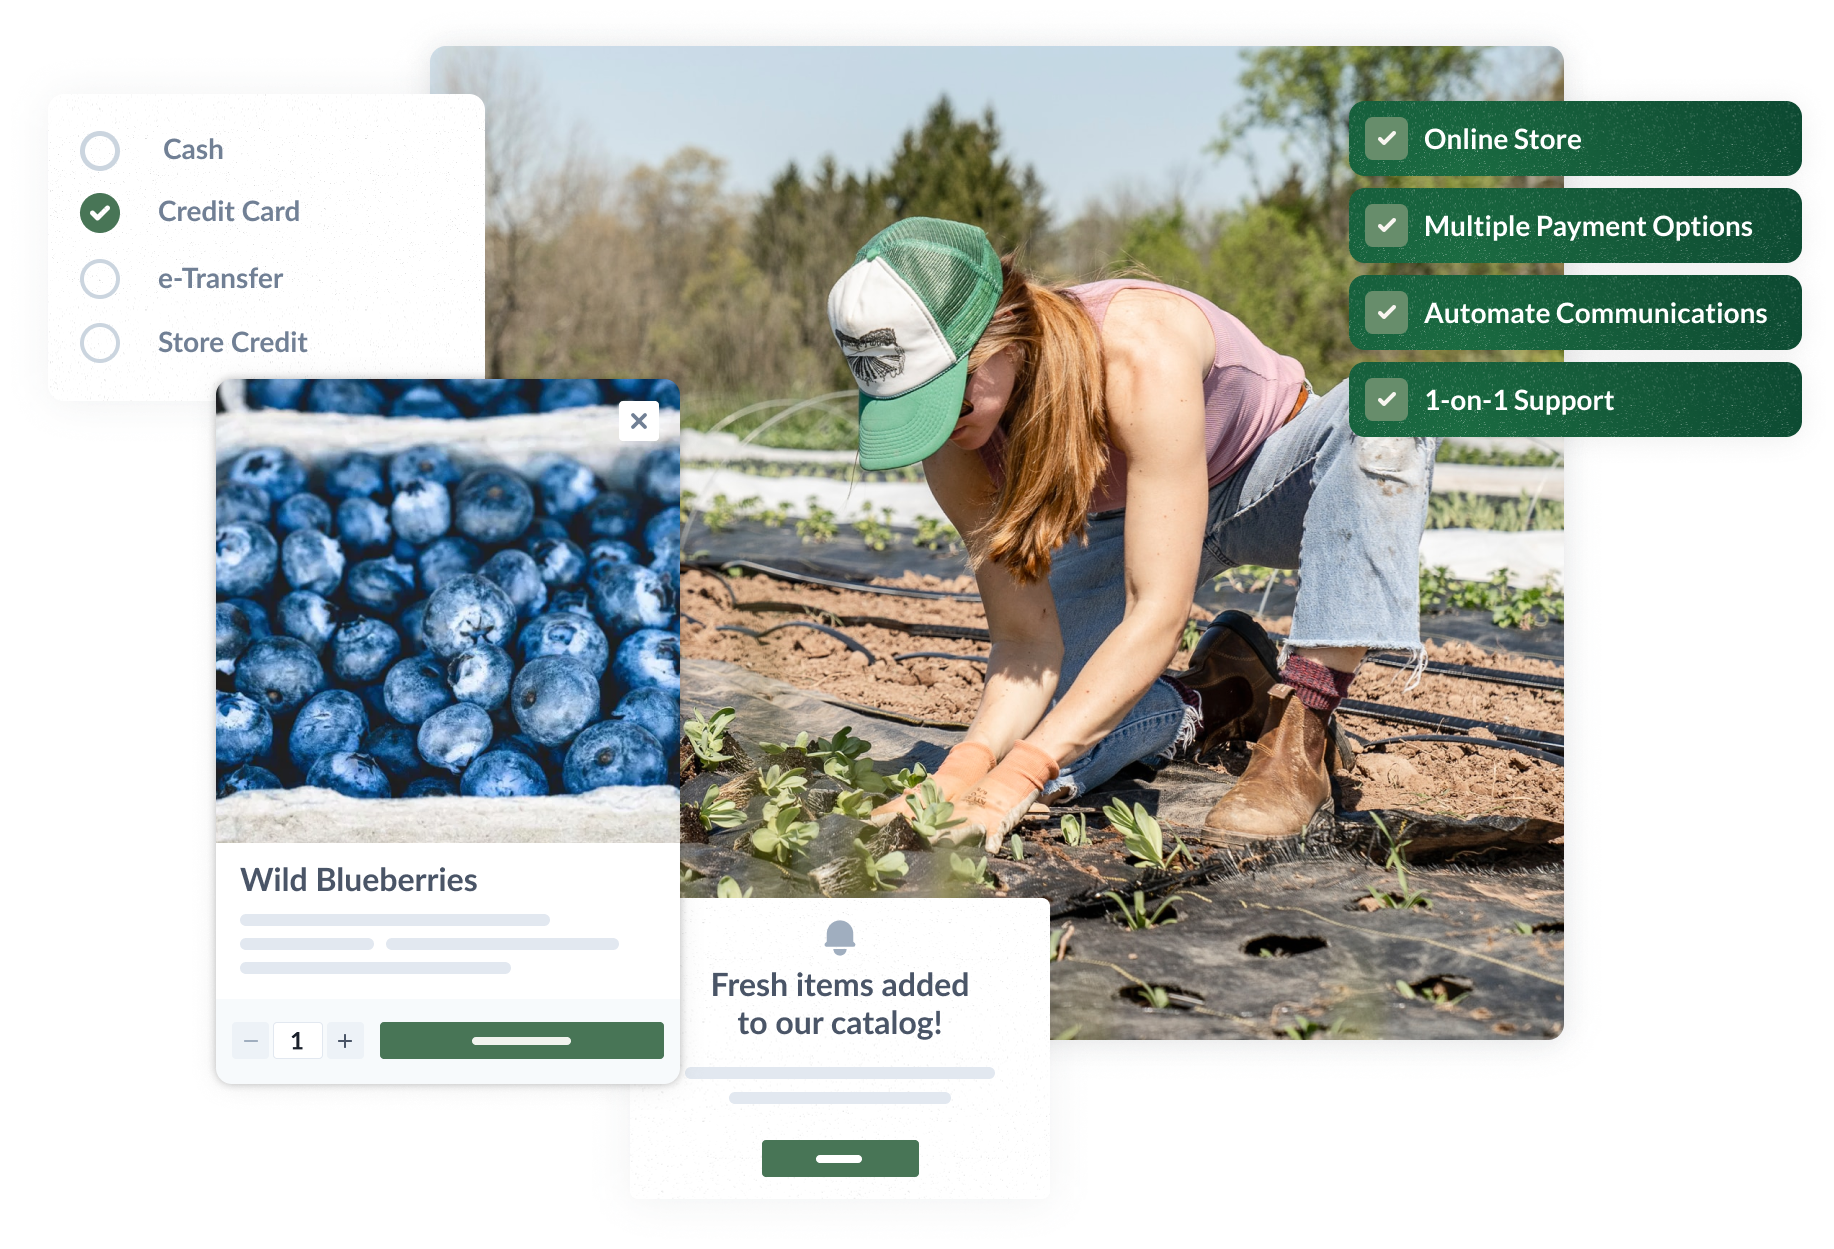 Bring your local food business online. Have an online store, multiple payment options, automate communication with customers, and more.